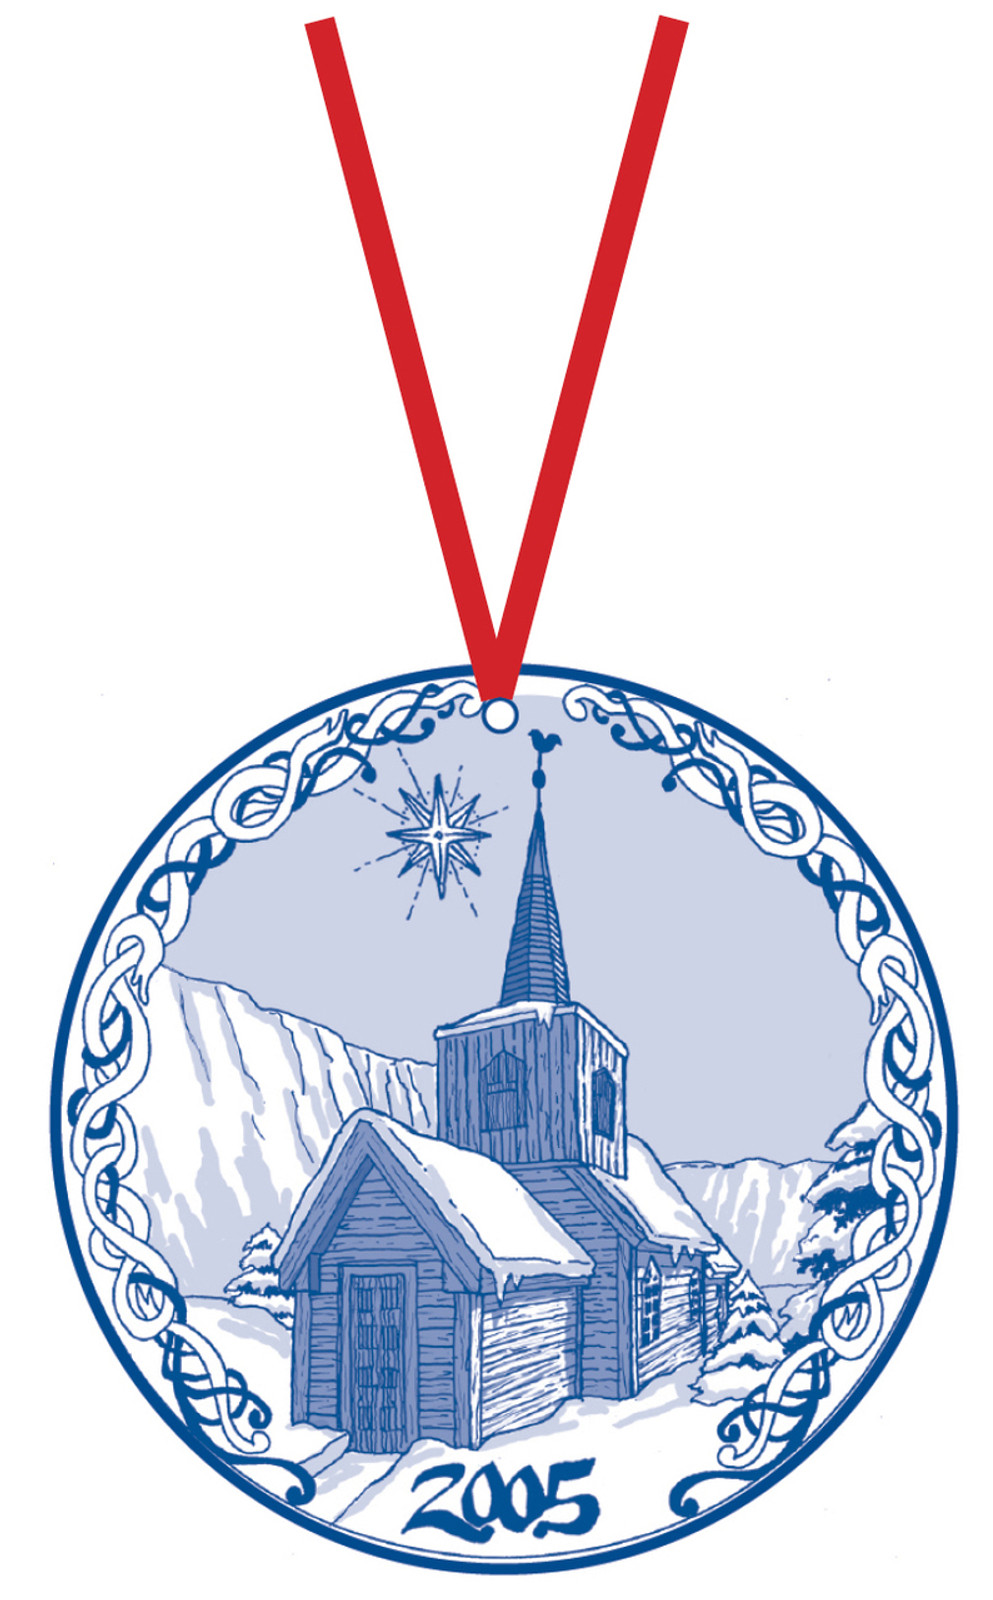 2005 Stav Church Ornament - Undredal. Made by Norse Traditions and available at The Nordic Shop.